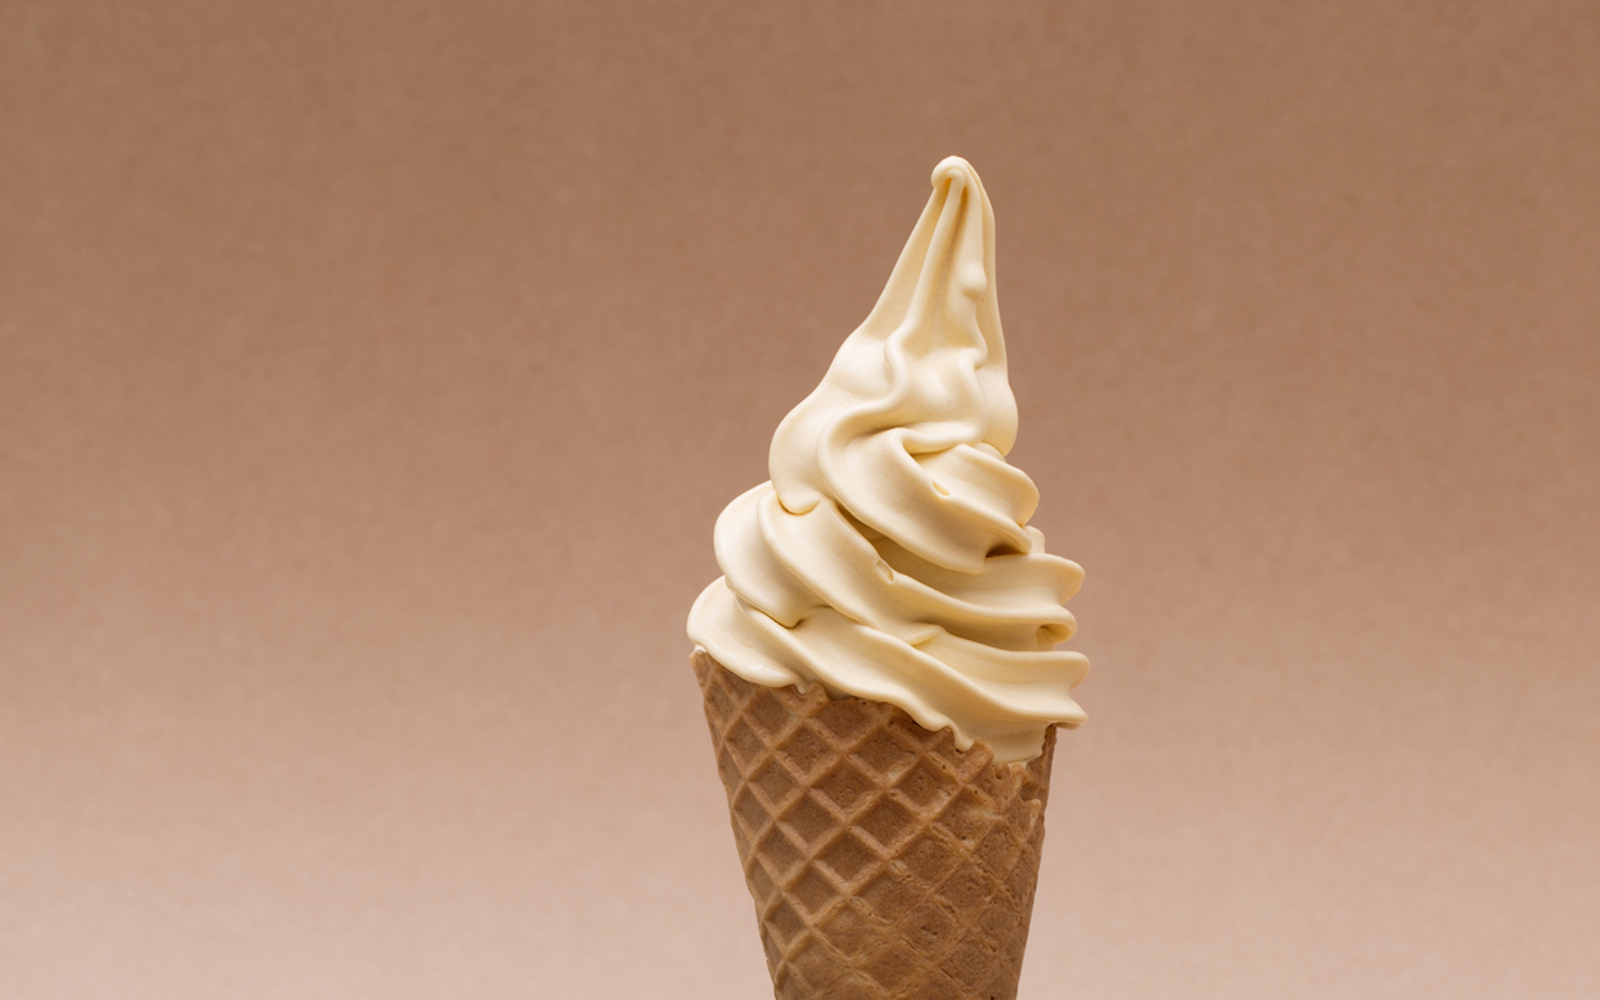 ikea vegan soft serve ice cream